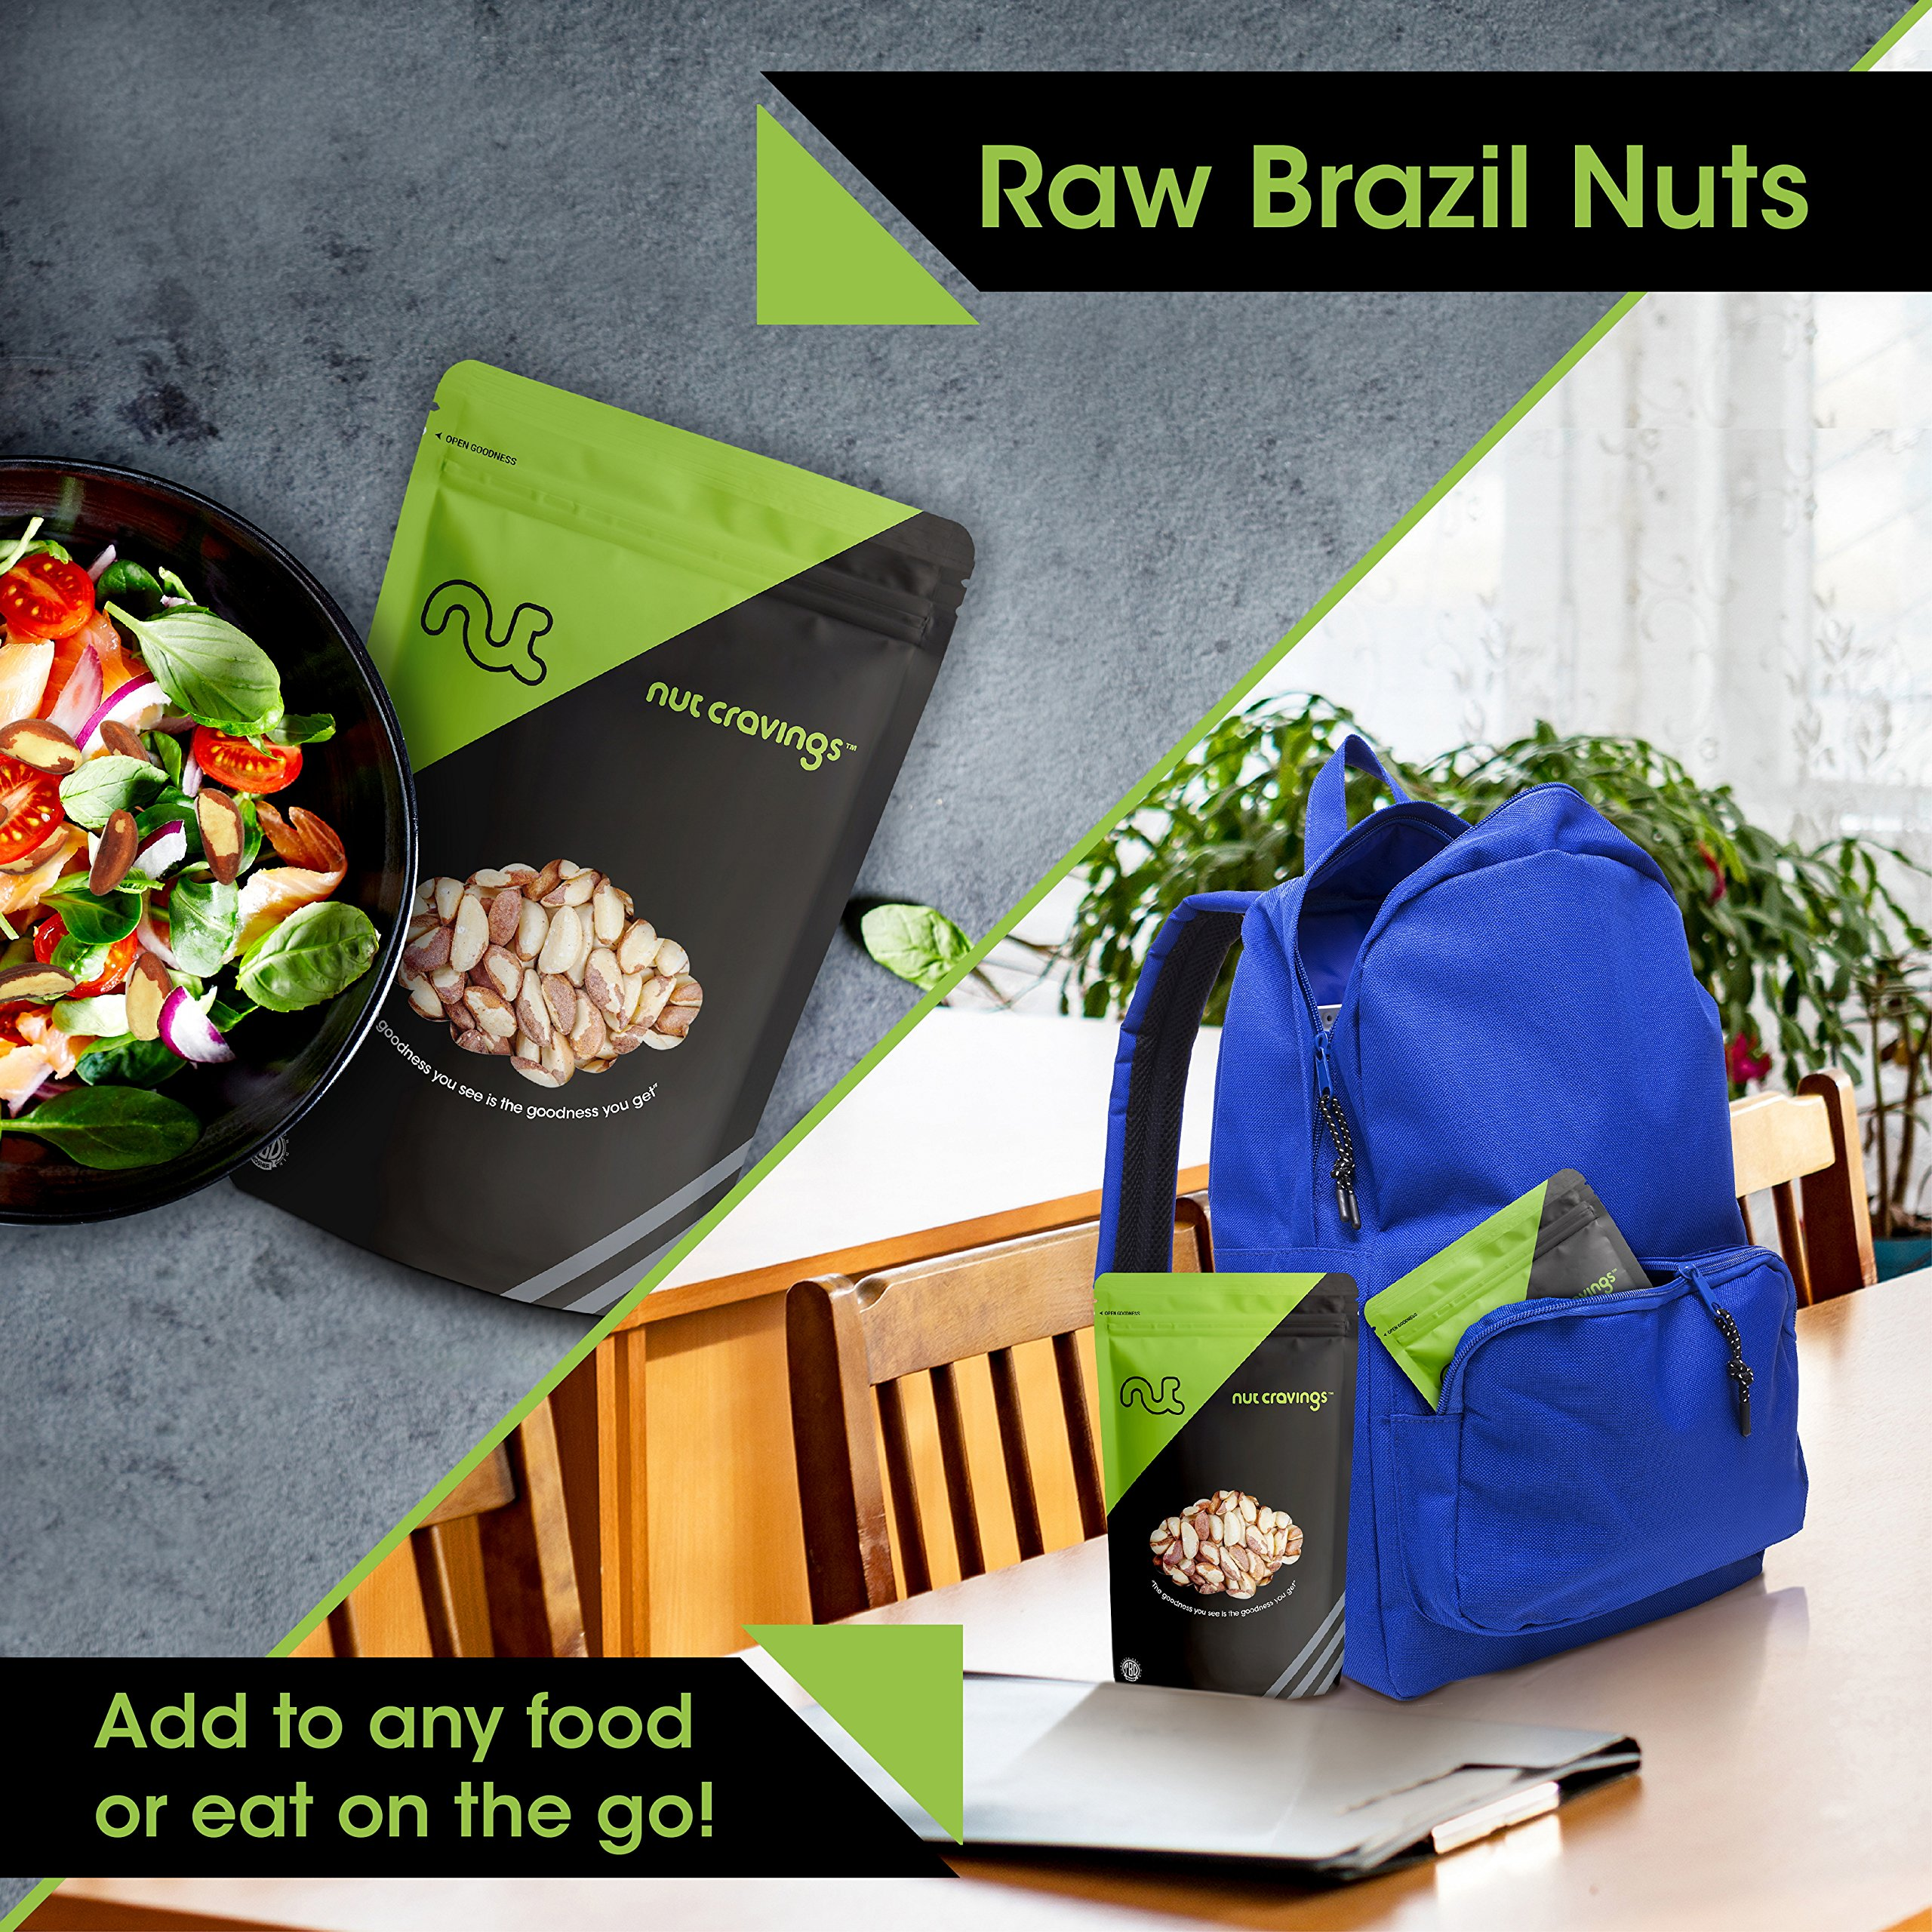 Nut Cravings Raw Brazil Nuts (1 Pound) – Whole, Compare To Organic, Unsalted, No Shell Brazilian Nuts – 16 Ounce by Nut Cravings (Image #3)